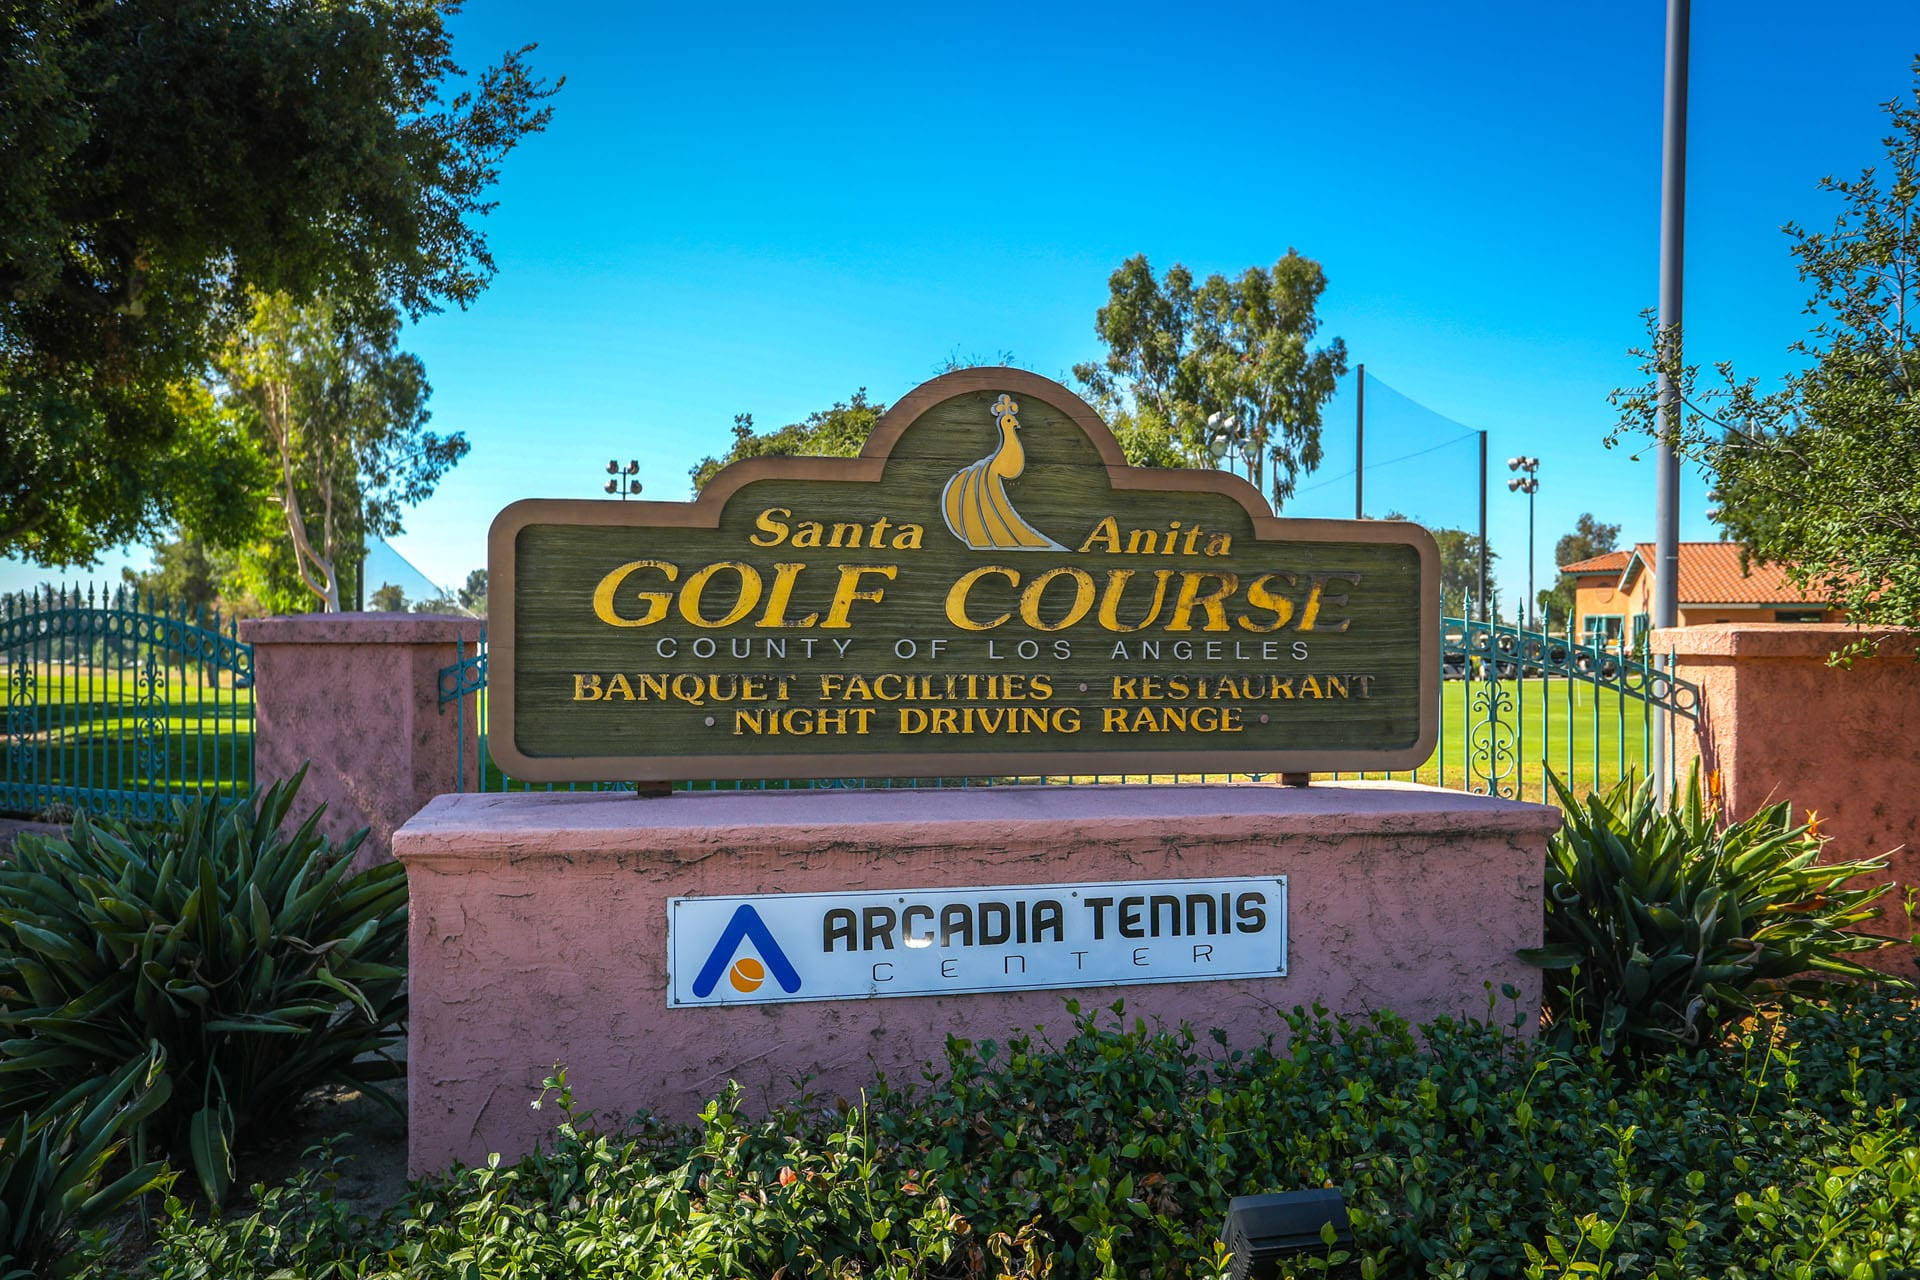 Santa Anita Golf Course sign